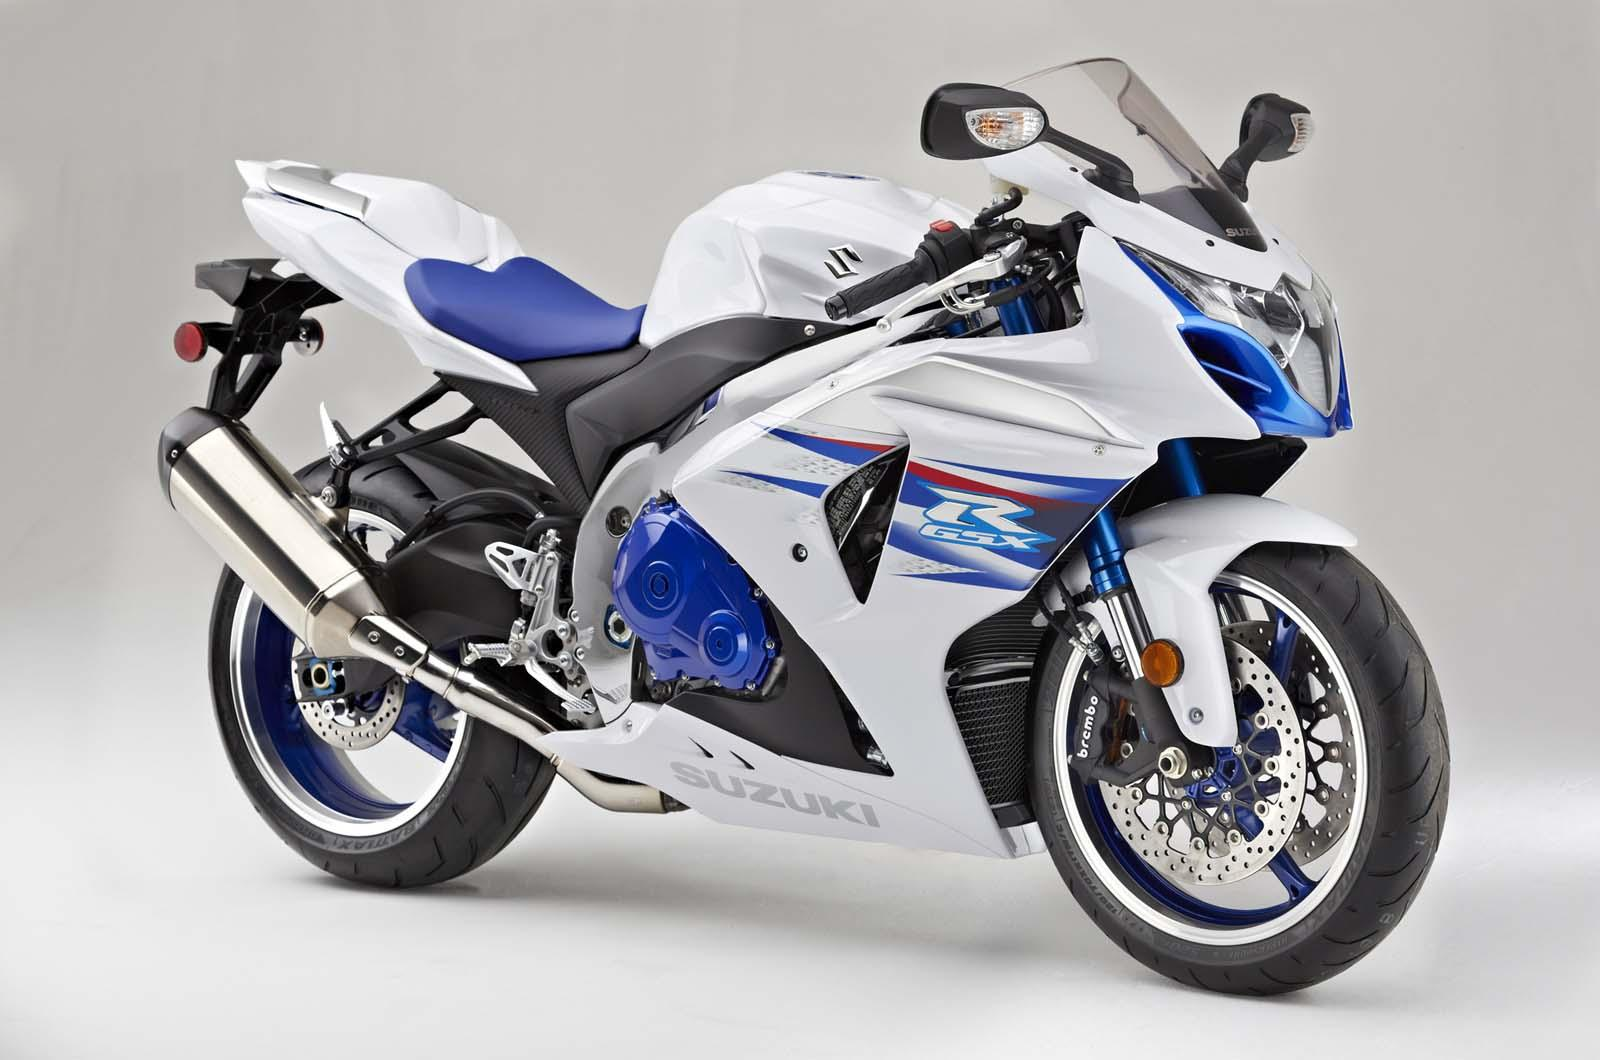 Astounding Suzuki Gsx R 600 K7 L4 Laptimes Specs Performance Data Ibusinesslaw Wood Chair Design Ideas Ibusinesslaworg